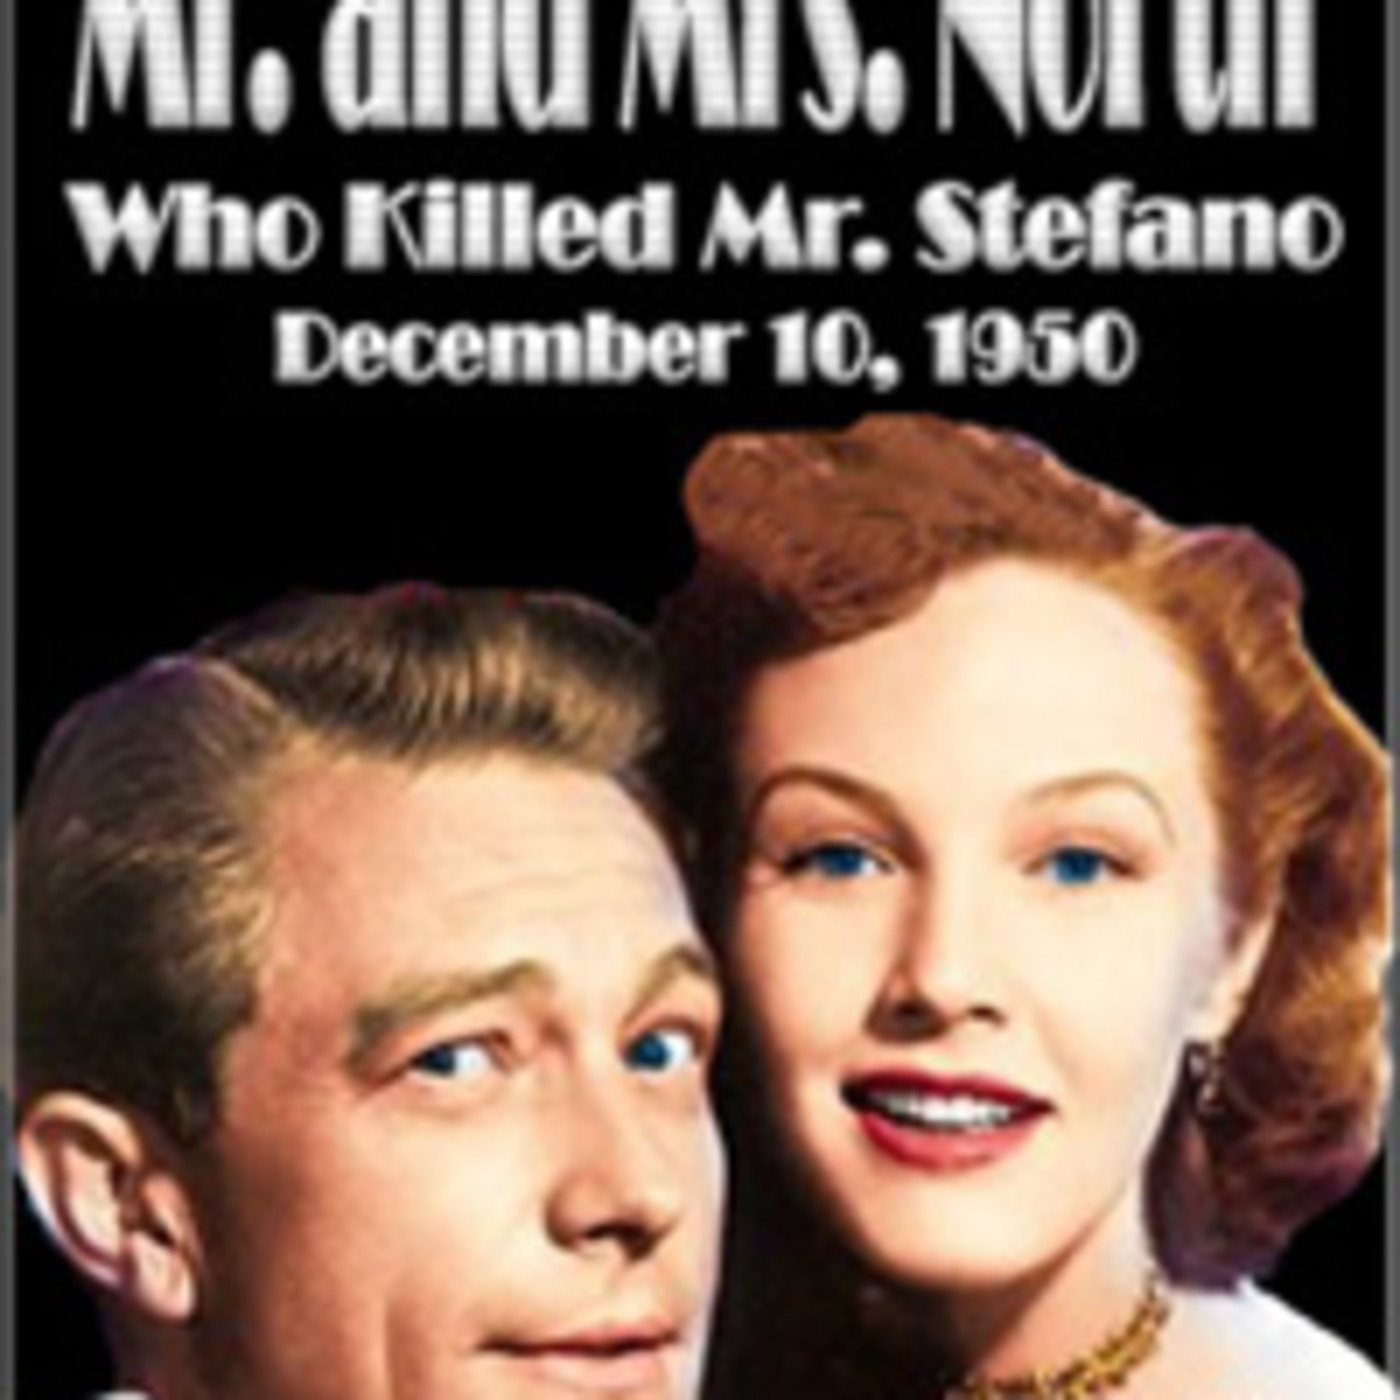 Mr. & Mrs. North - Who Killed Mr. Stefano (12-10-50)